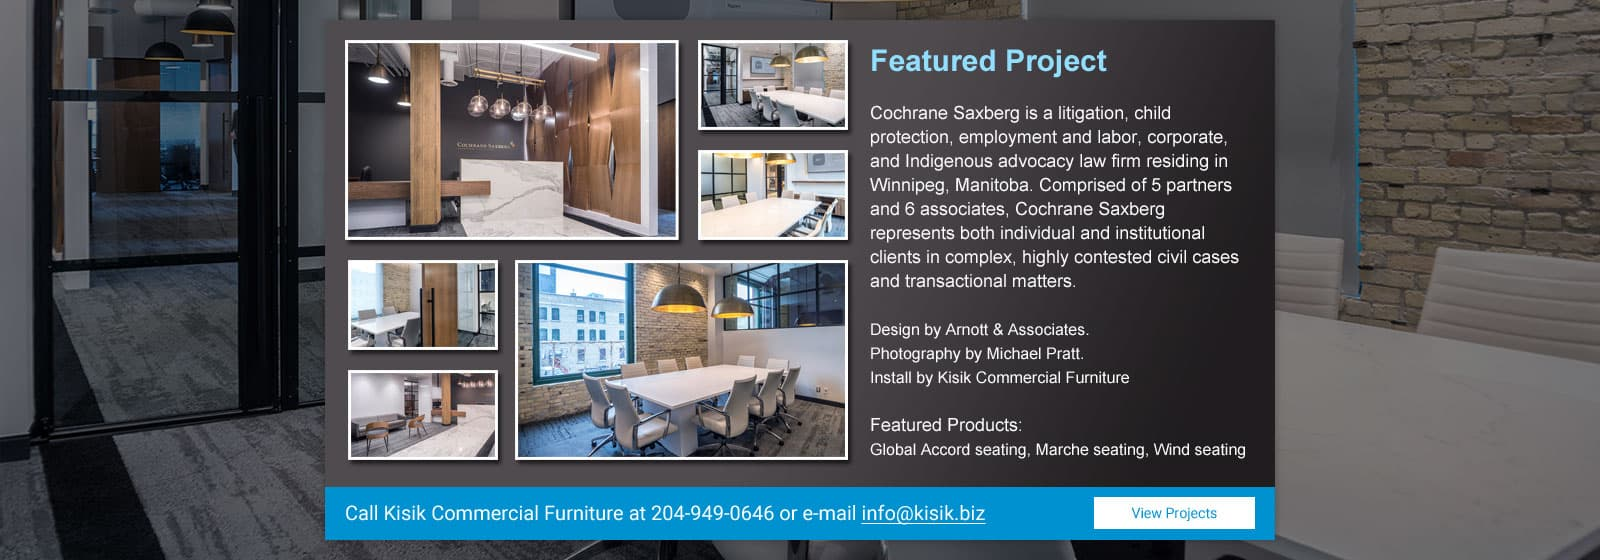 Featured Project - Cochrane Saxberg Install